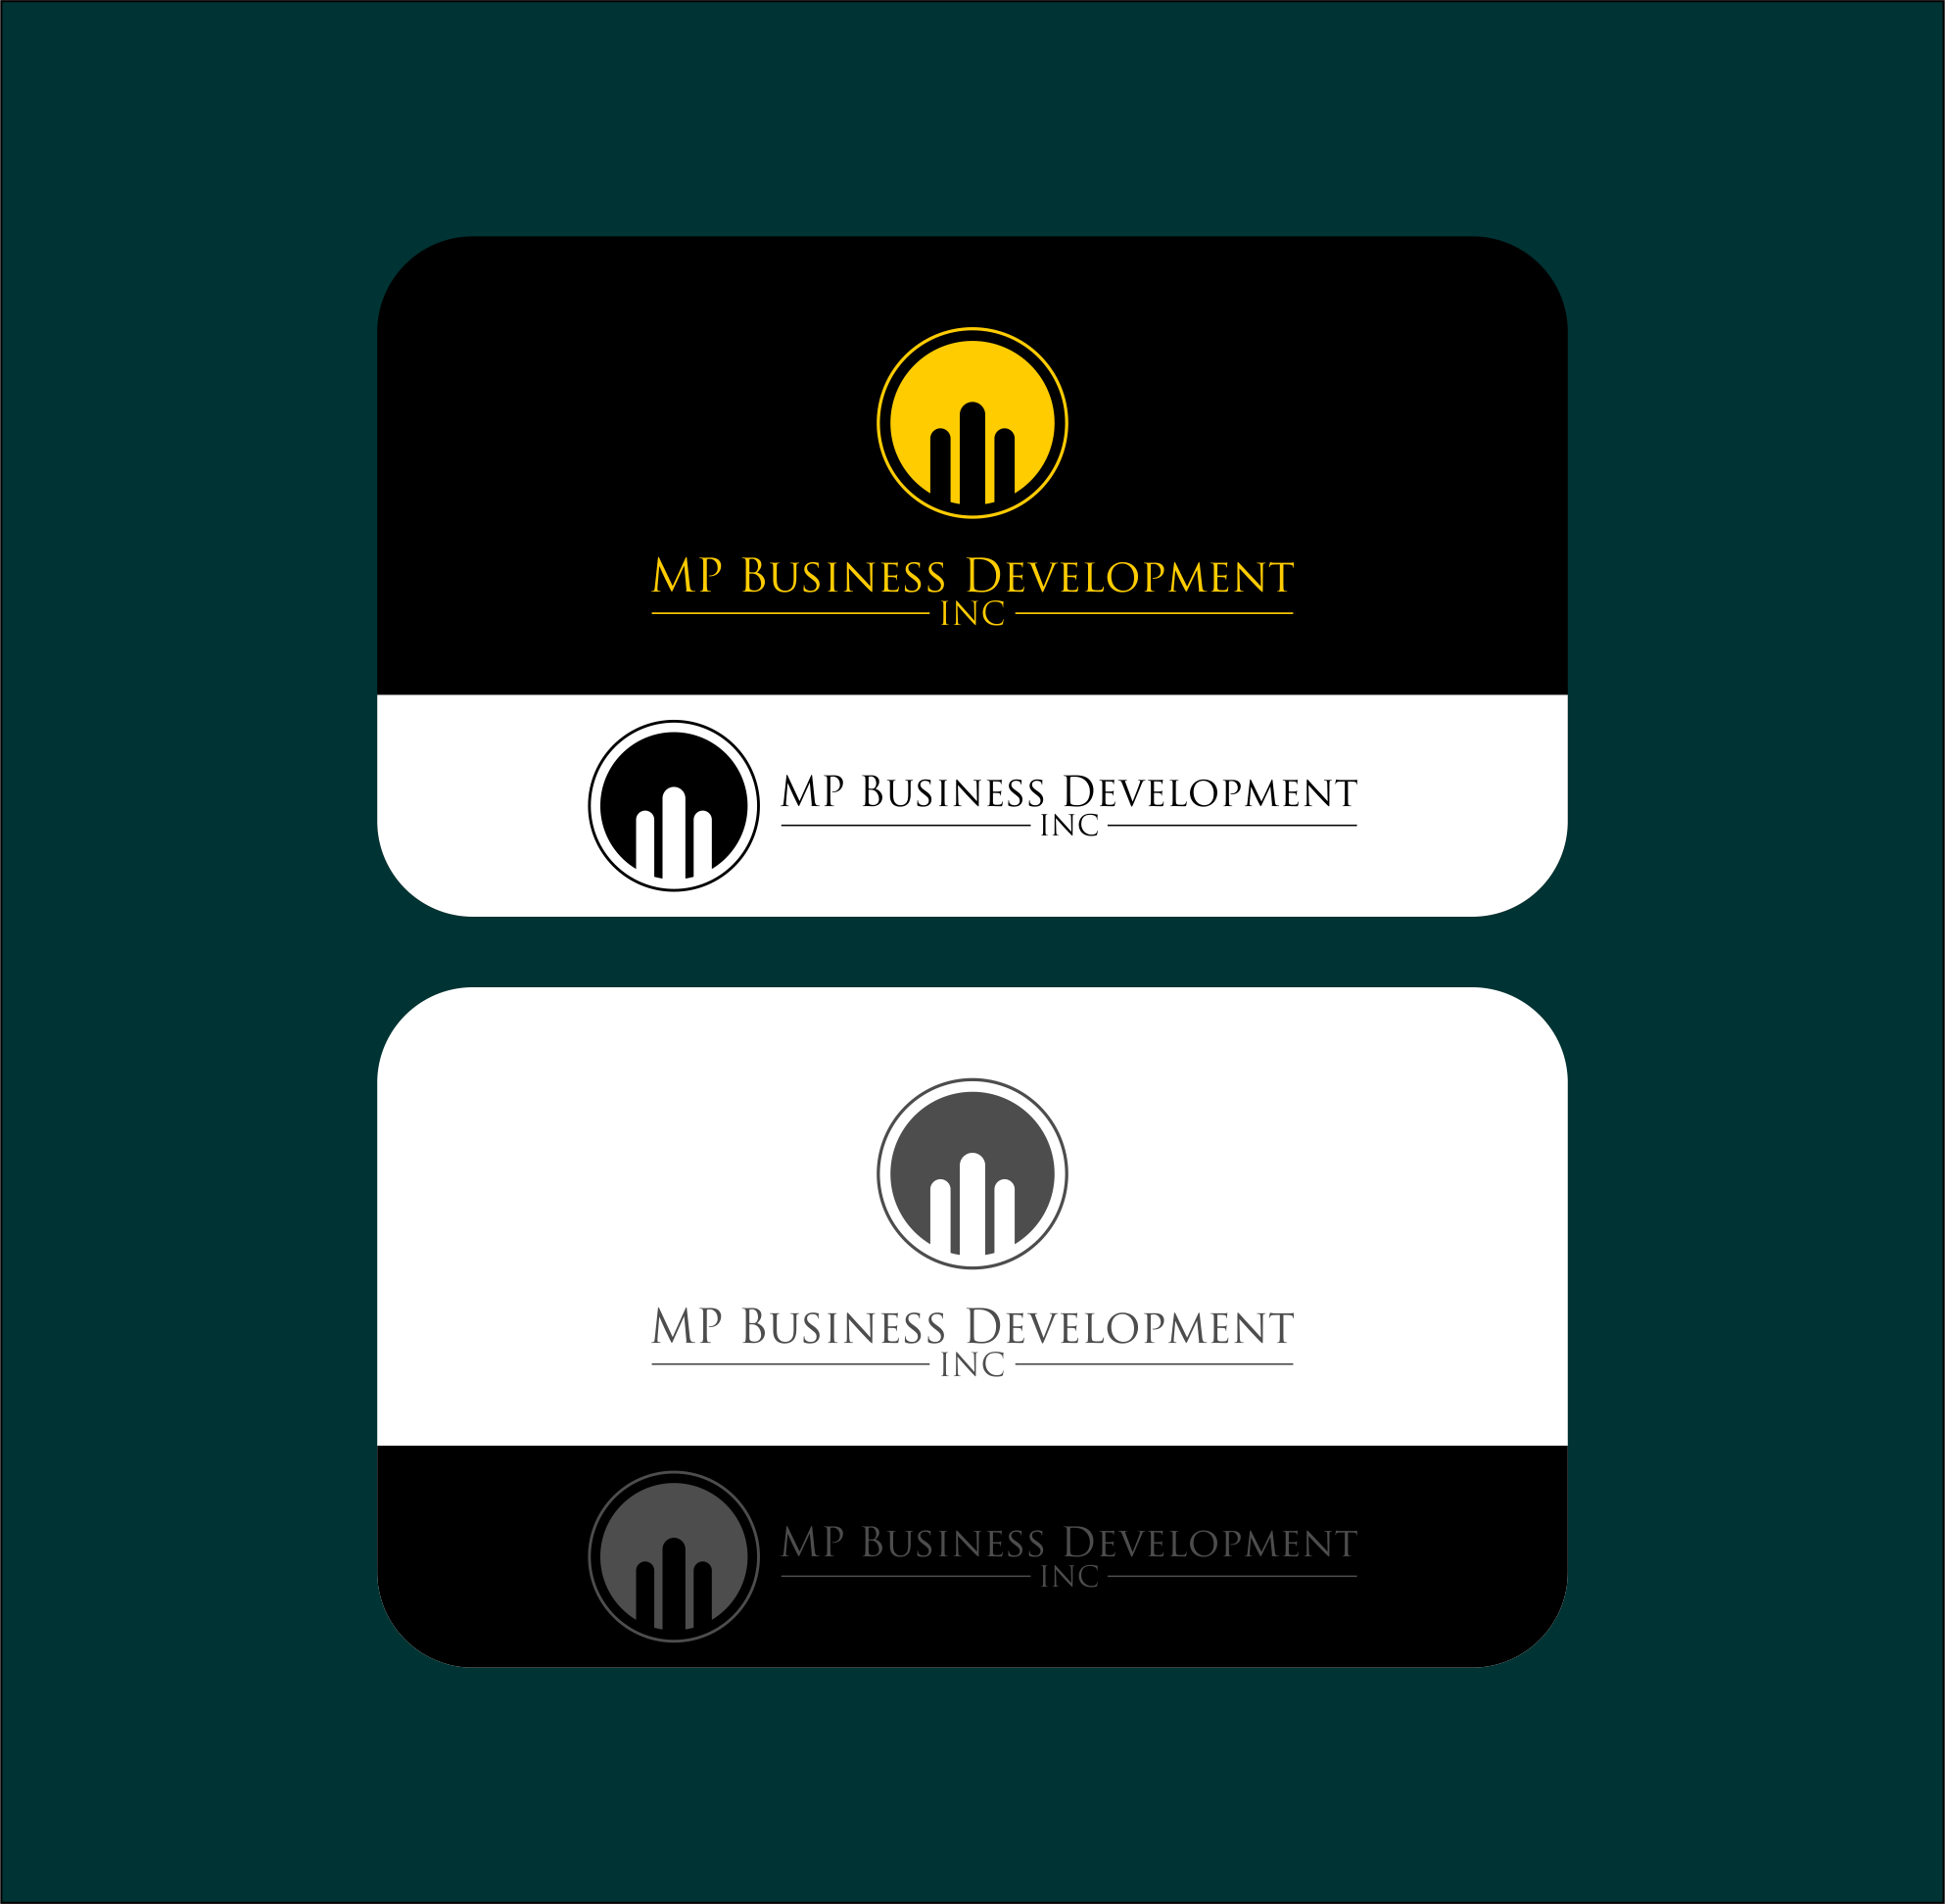 Logo Design by Agus Martoyo - Entry No. 112 in the Logo Design Contest MP Business Development Inc. Logo Design.